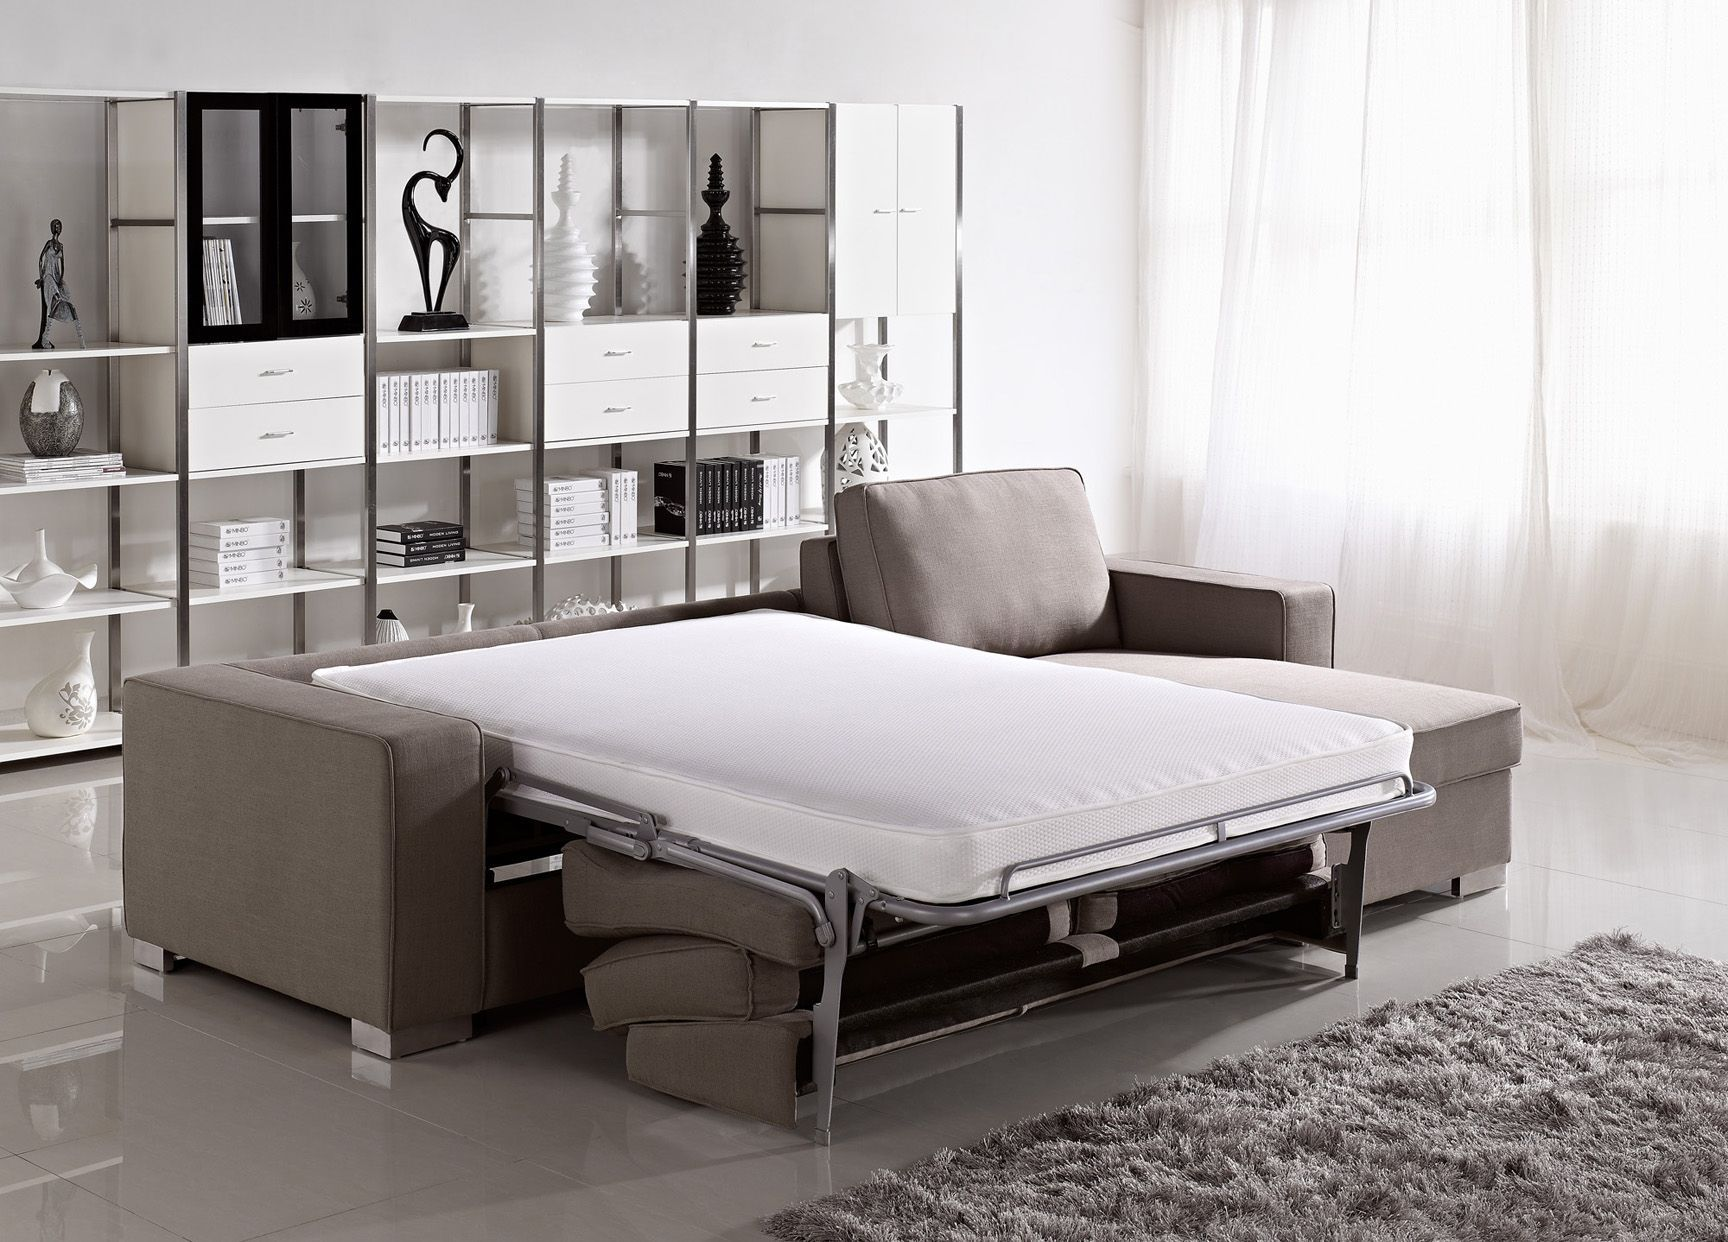 Recommended Ideas Apartment Size Furniture For Your Limited Space Apartment Or Home Artmakehome